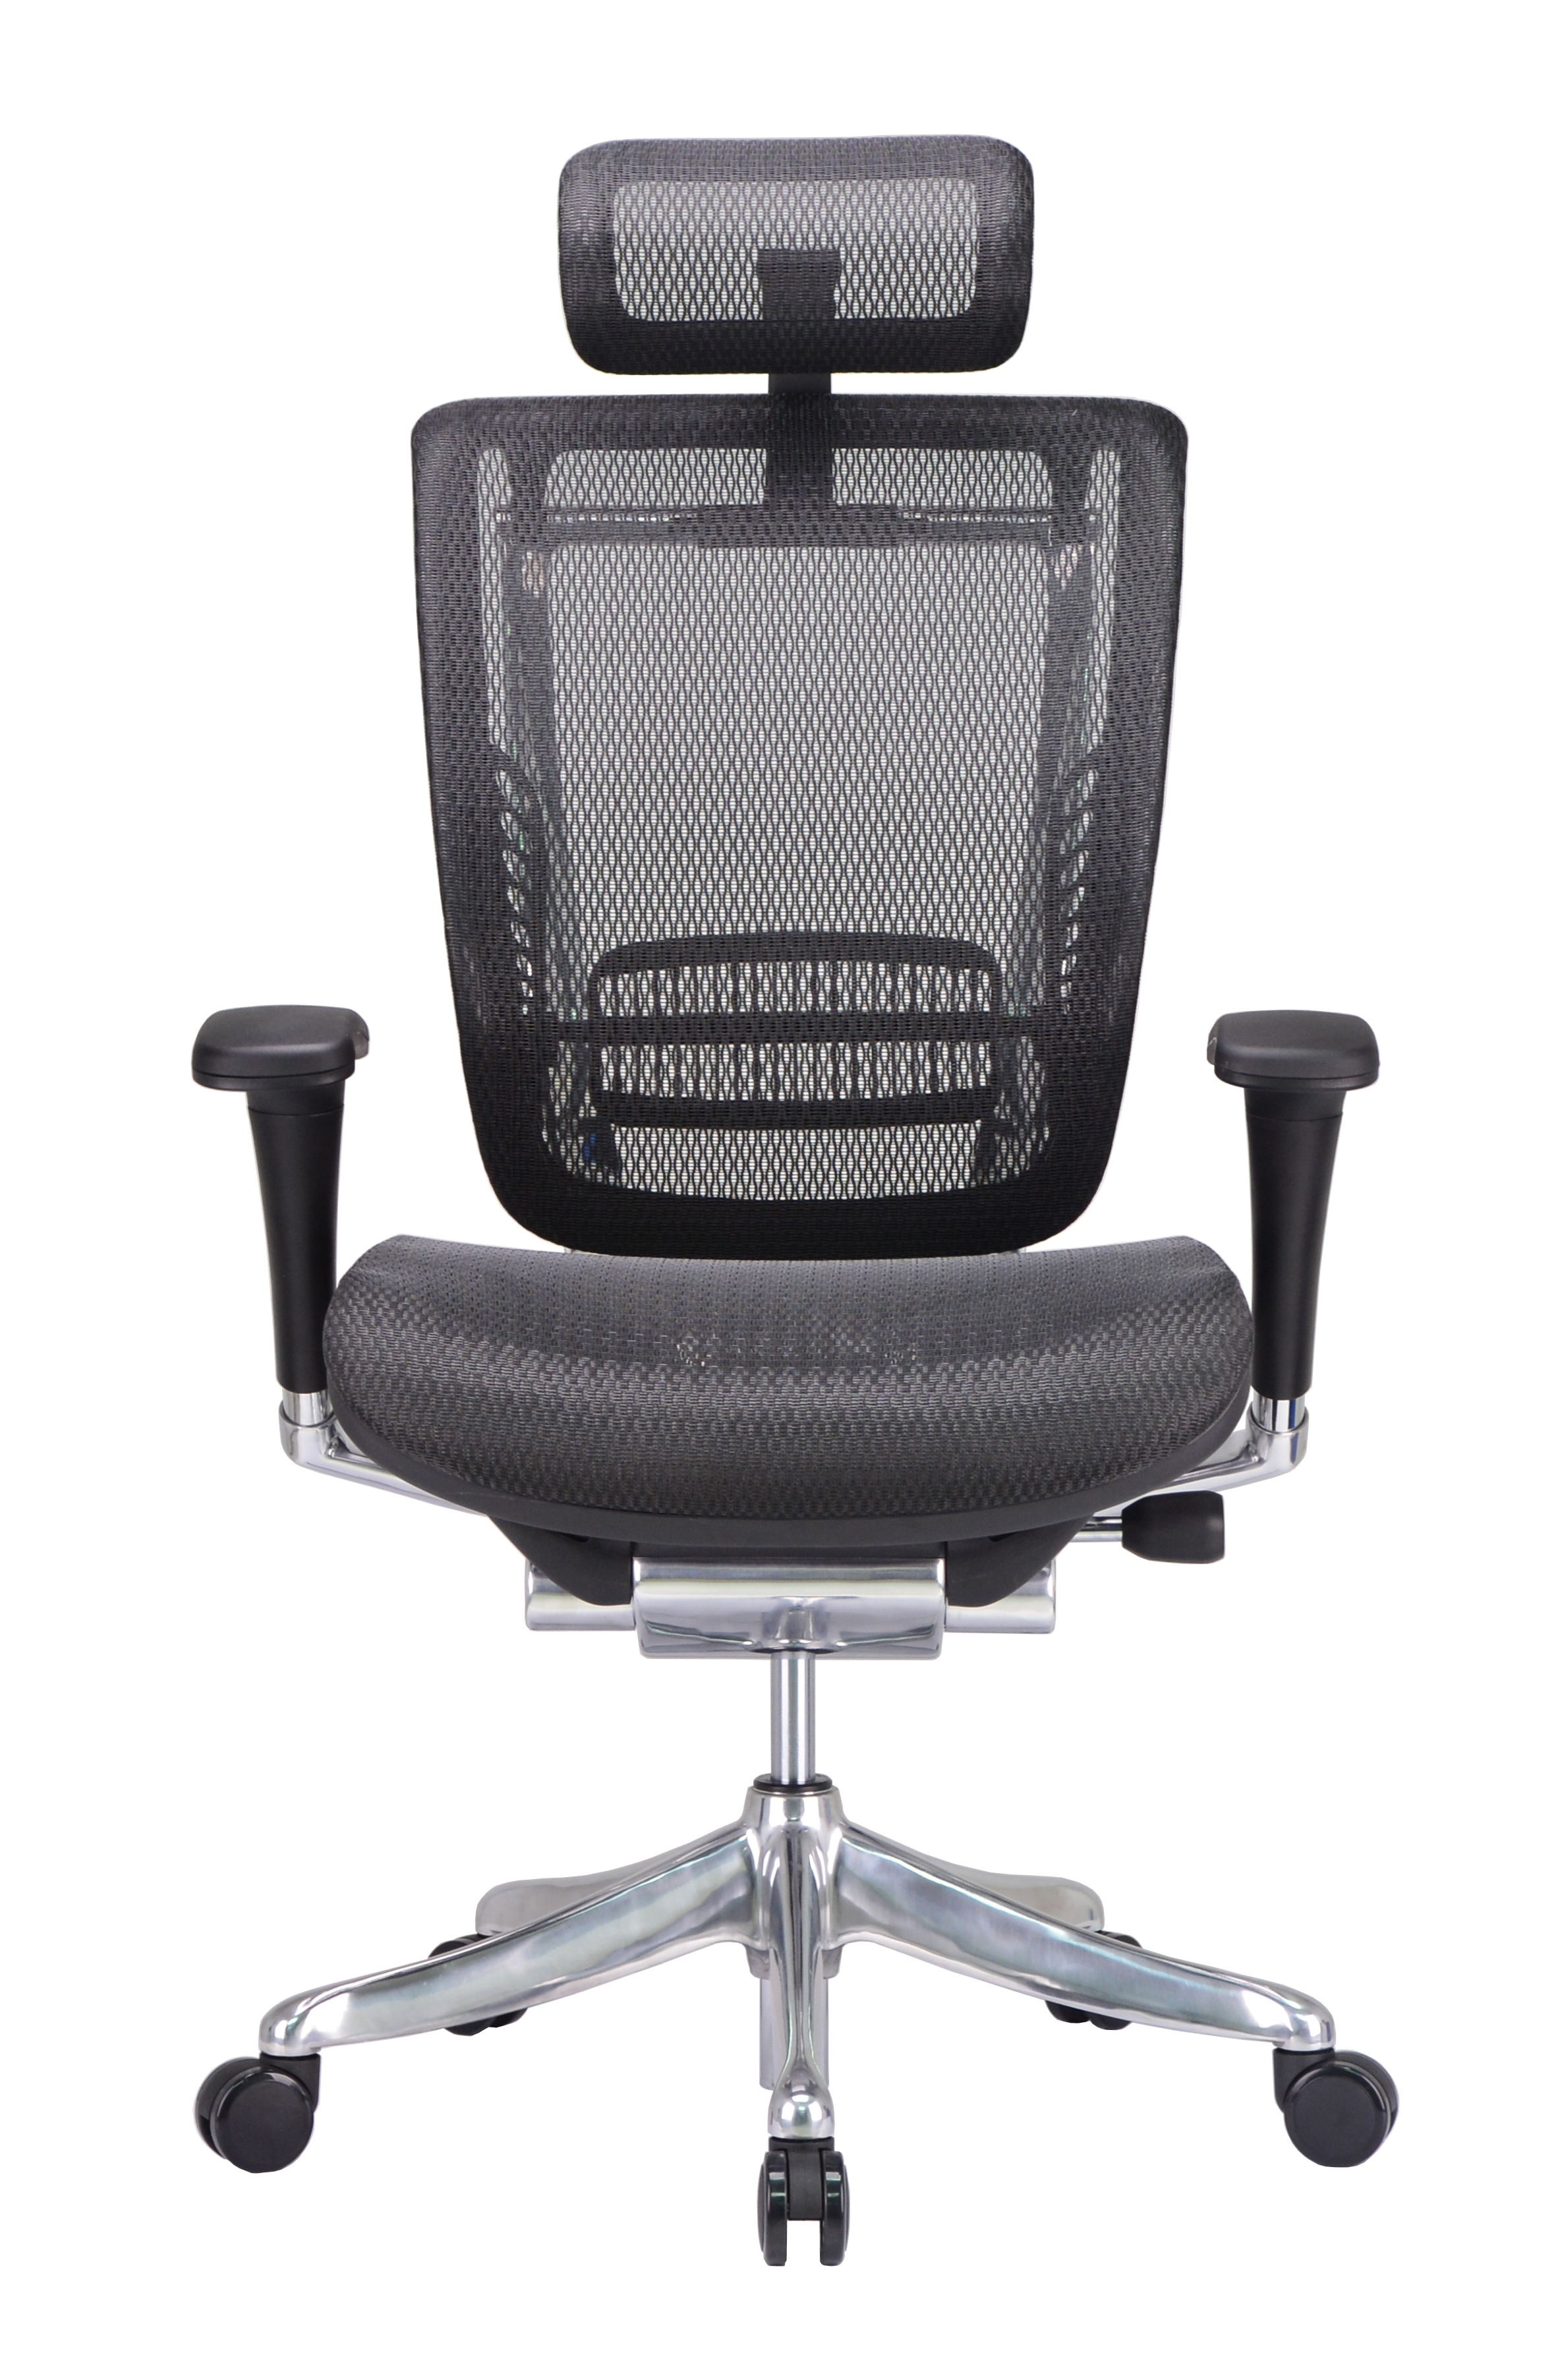 Xl Executive Office Chairs In Best And Newest Xl Executive Office Chairs • Office Chairs (View 17 of 20)